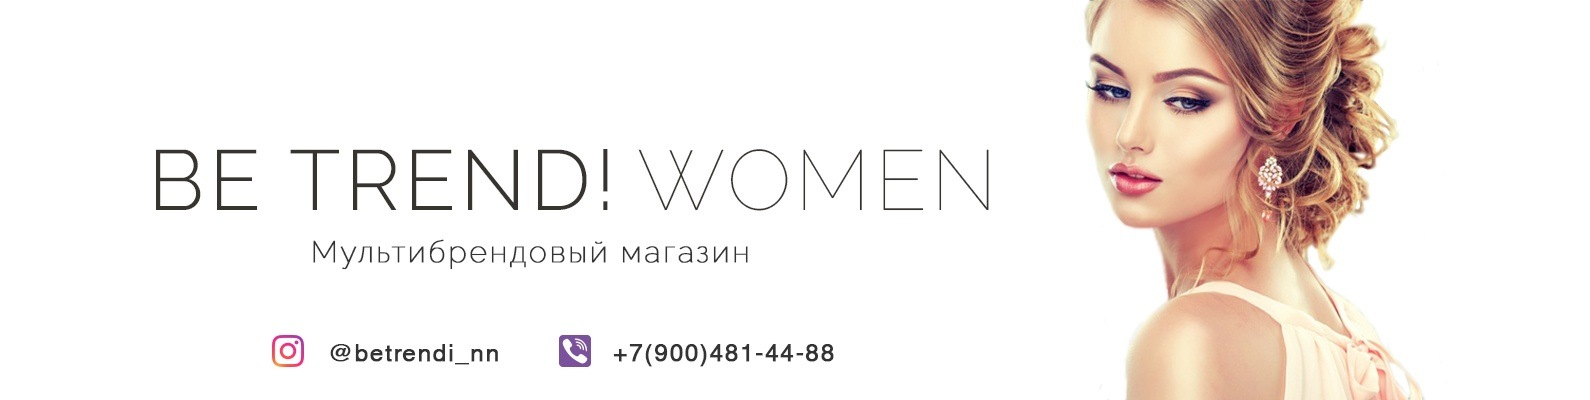 920e6de1cd4 - Be Trend! Women г. Н.Новгород